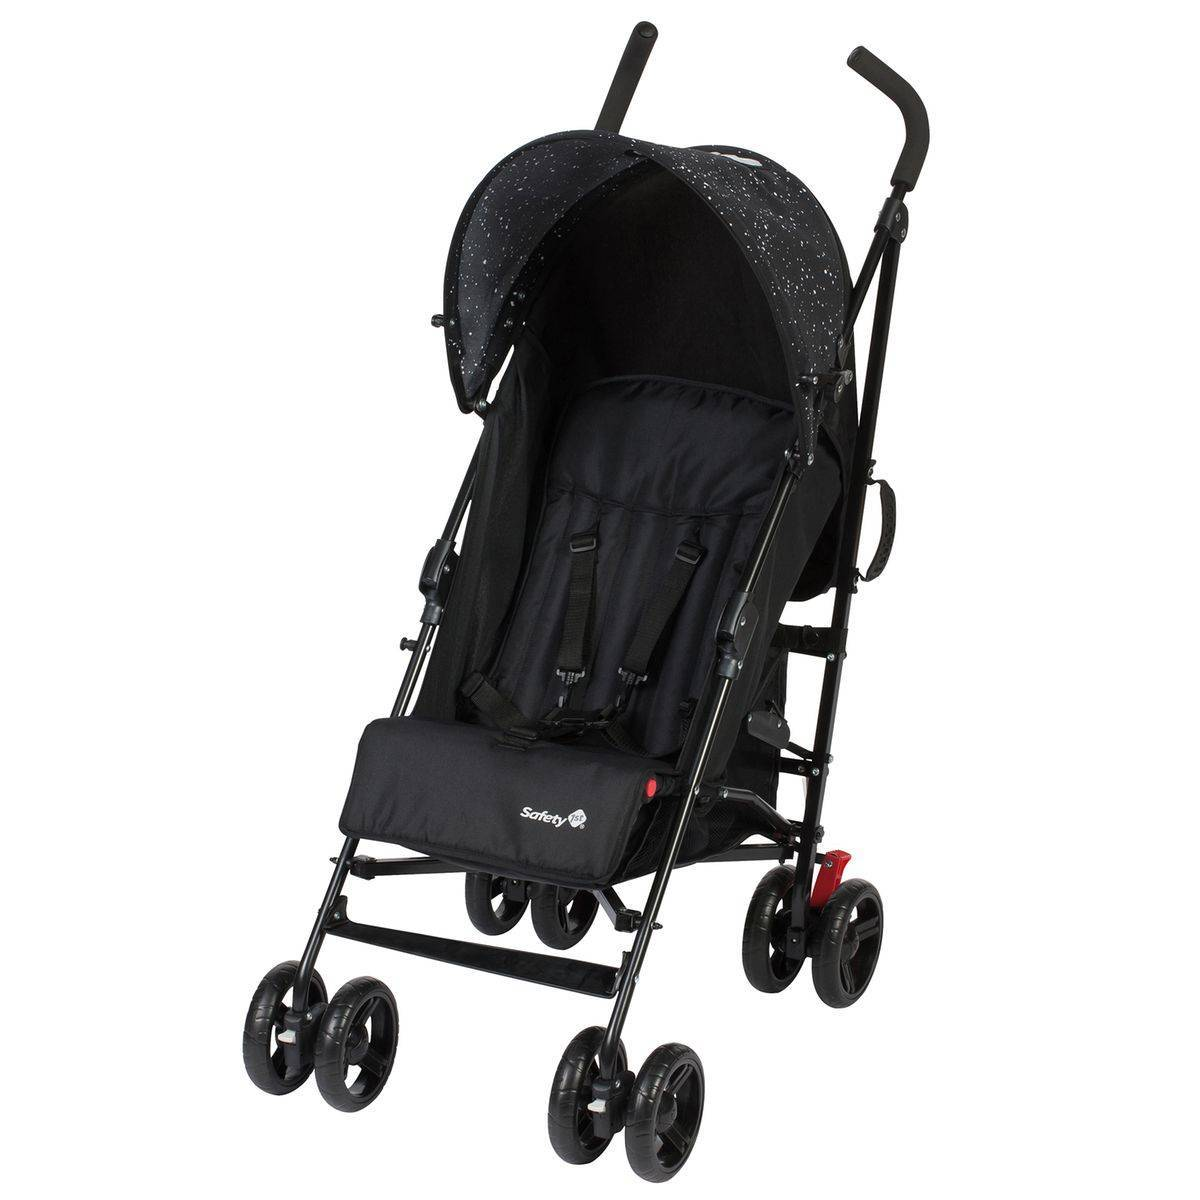 SAFETY FIRST Poussette canne multipositions SLIM - SAFETY FIRST